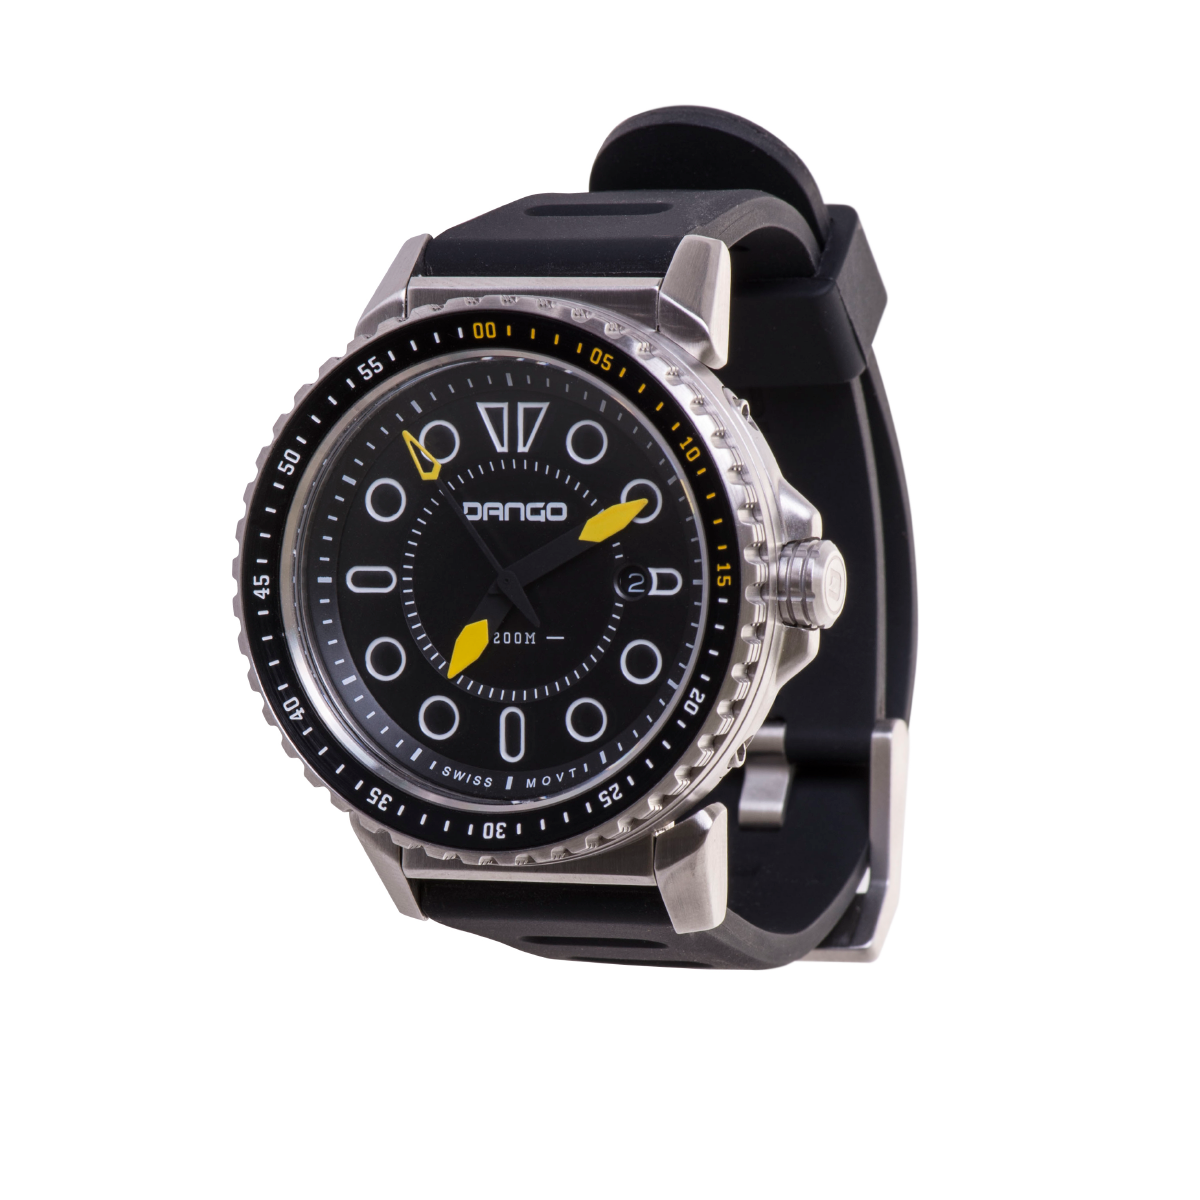 DV-01 - DIVE WATCH WITH SILICONE SPORT STRAP - Dango Products